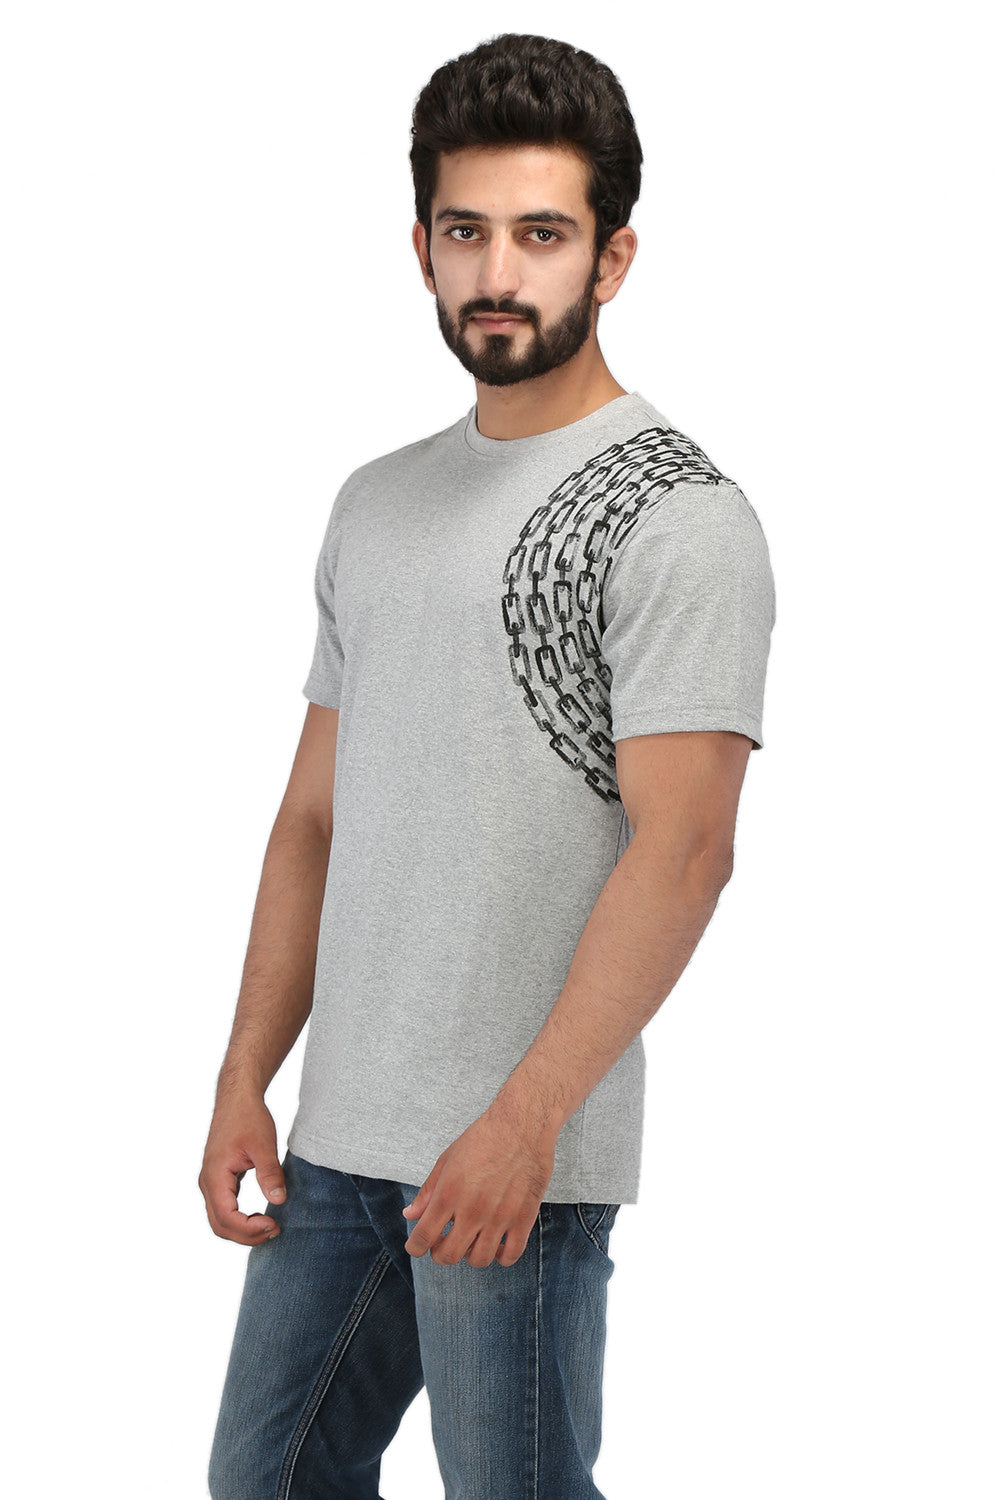 Hand-painted Minimalist Chain Grey T-shirt - Rang Rage  - 3